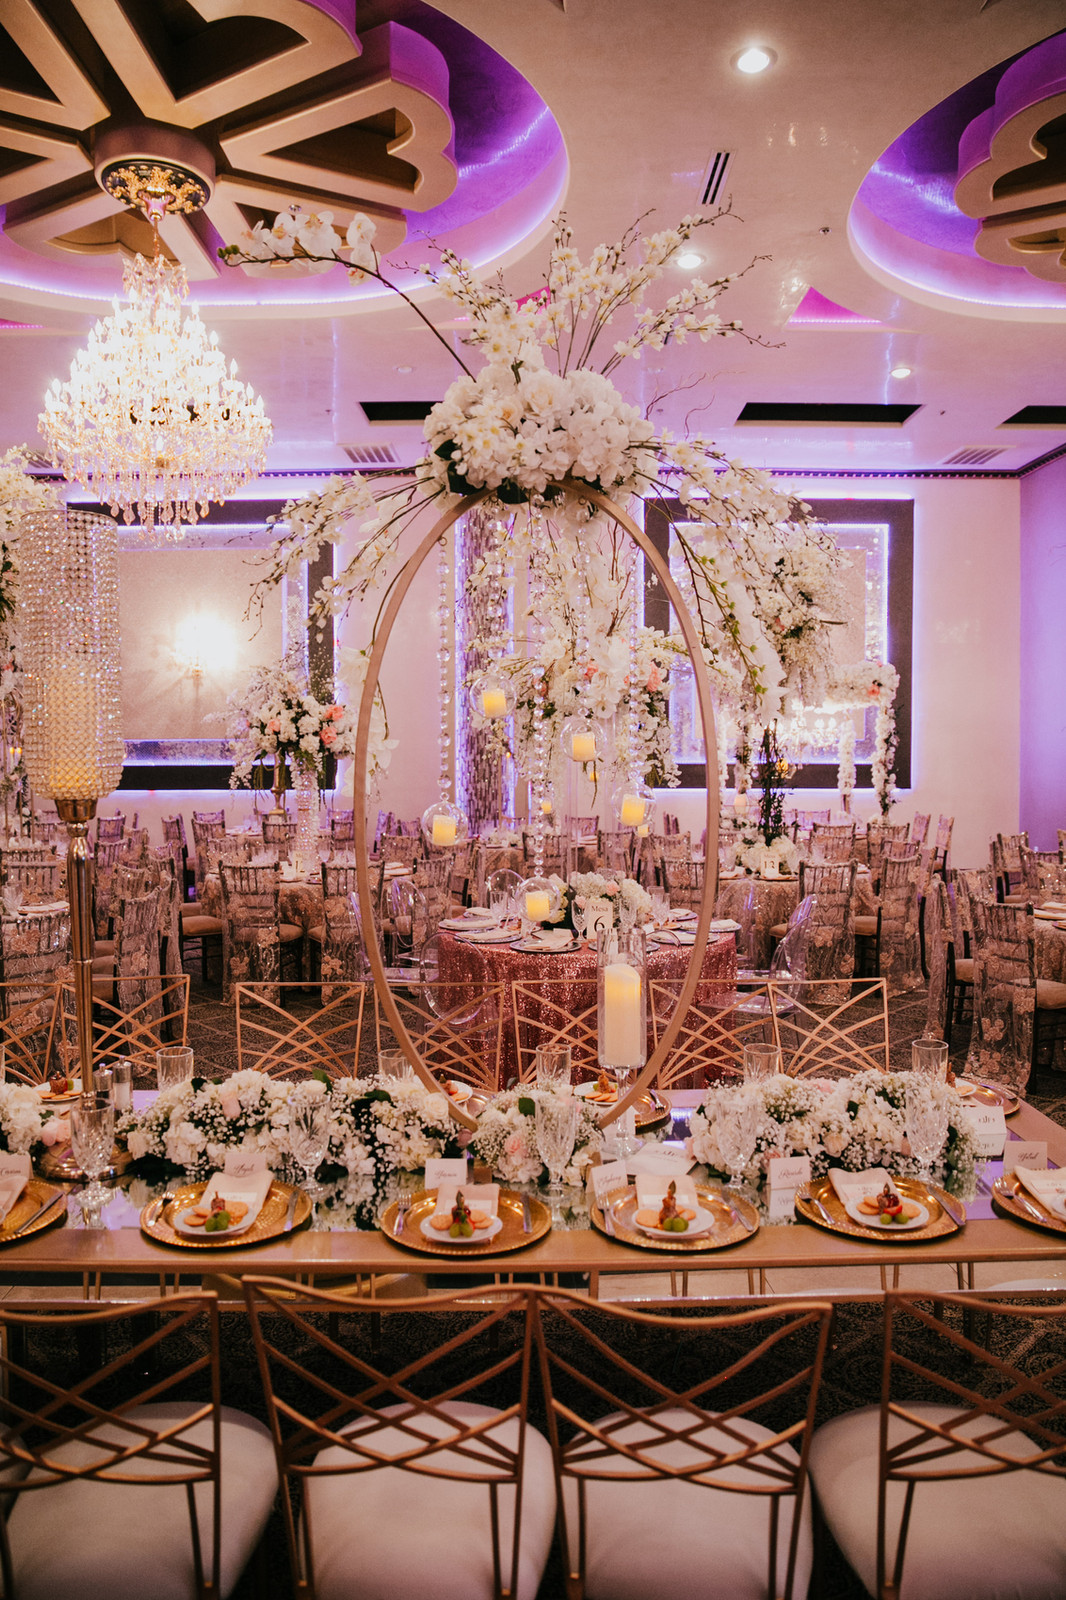 Beautiful Ballroom Fancy Lighting Elegance Even Playroom For The Kids Great Place Weddings Special Events